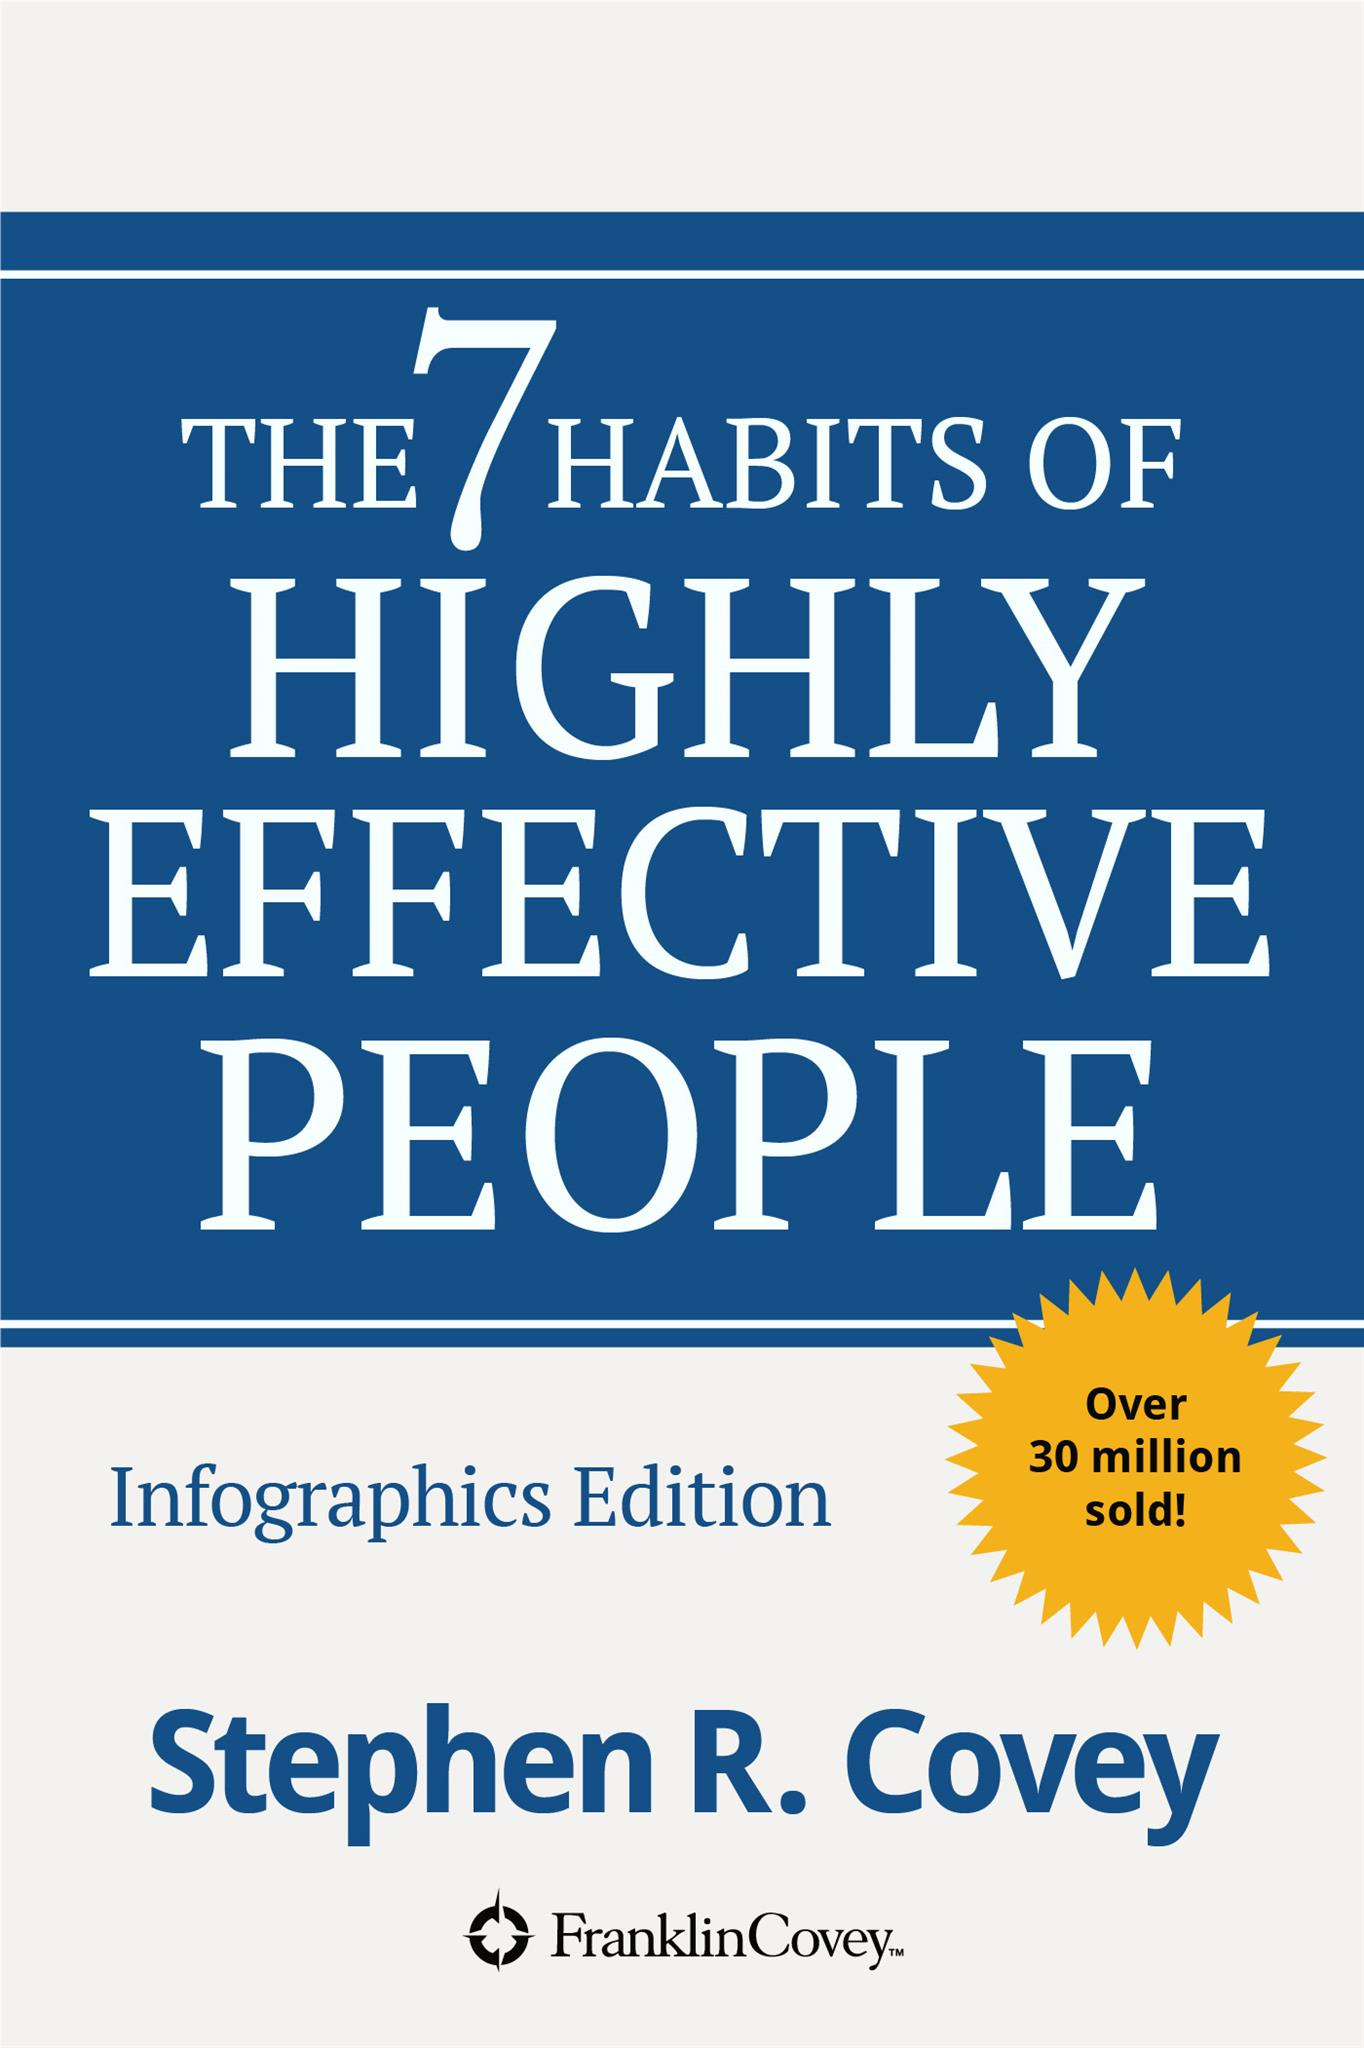 The 7 Habits of Highly Effective People by